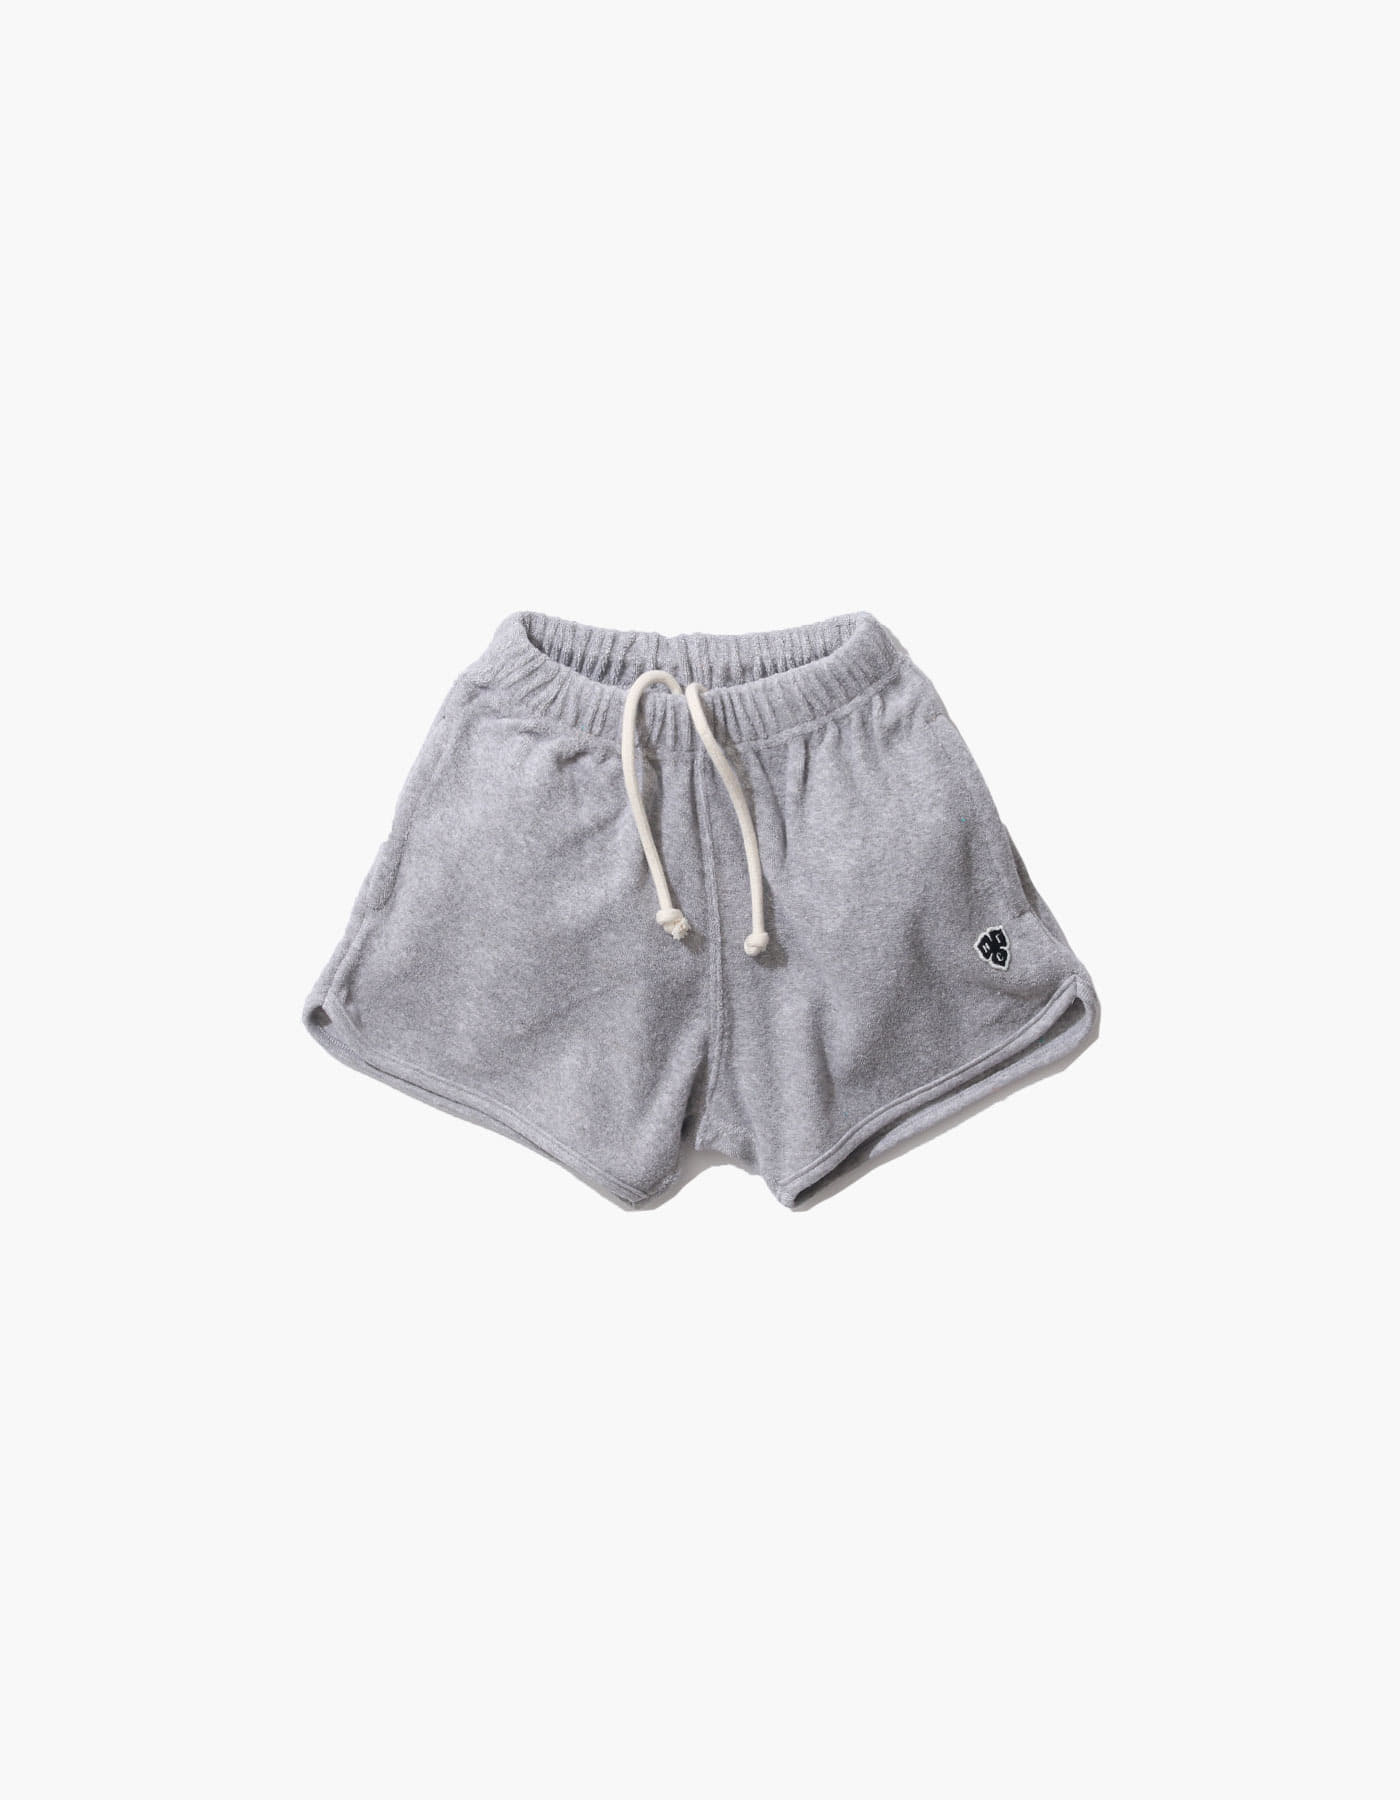 HFC CREST KIDS TOWEL SHORTS / M.GREY(5%)